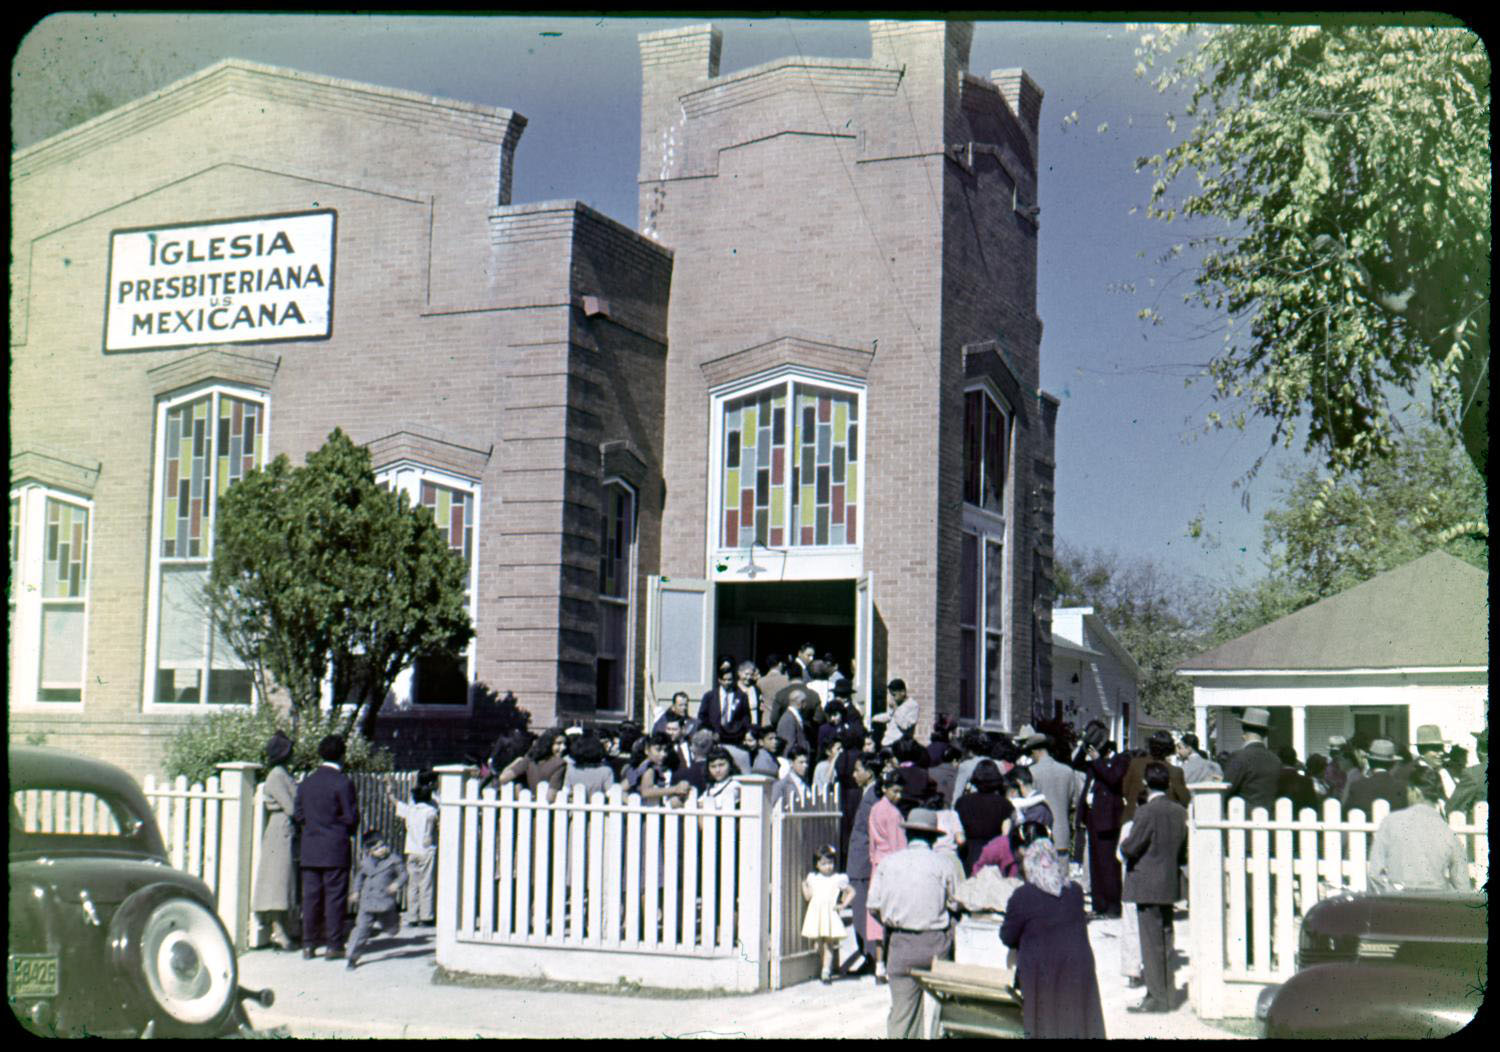 A group of people in front of the Iglesia Presbiteriana Mexicana, possibly in San Antonio, Texas, undated. From the Texas-Mexican Presbytery records, Austin Seminary Archives, Stitt Library, Austin Presbyterian Theological Seminary, Austin, Texas.